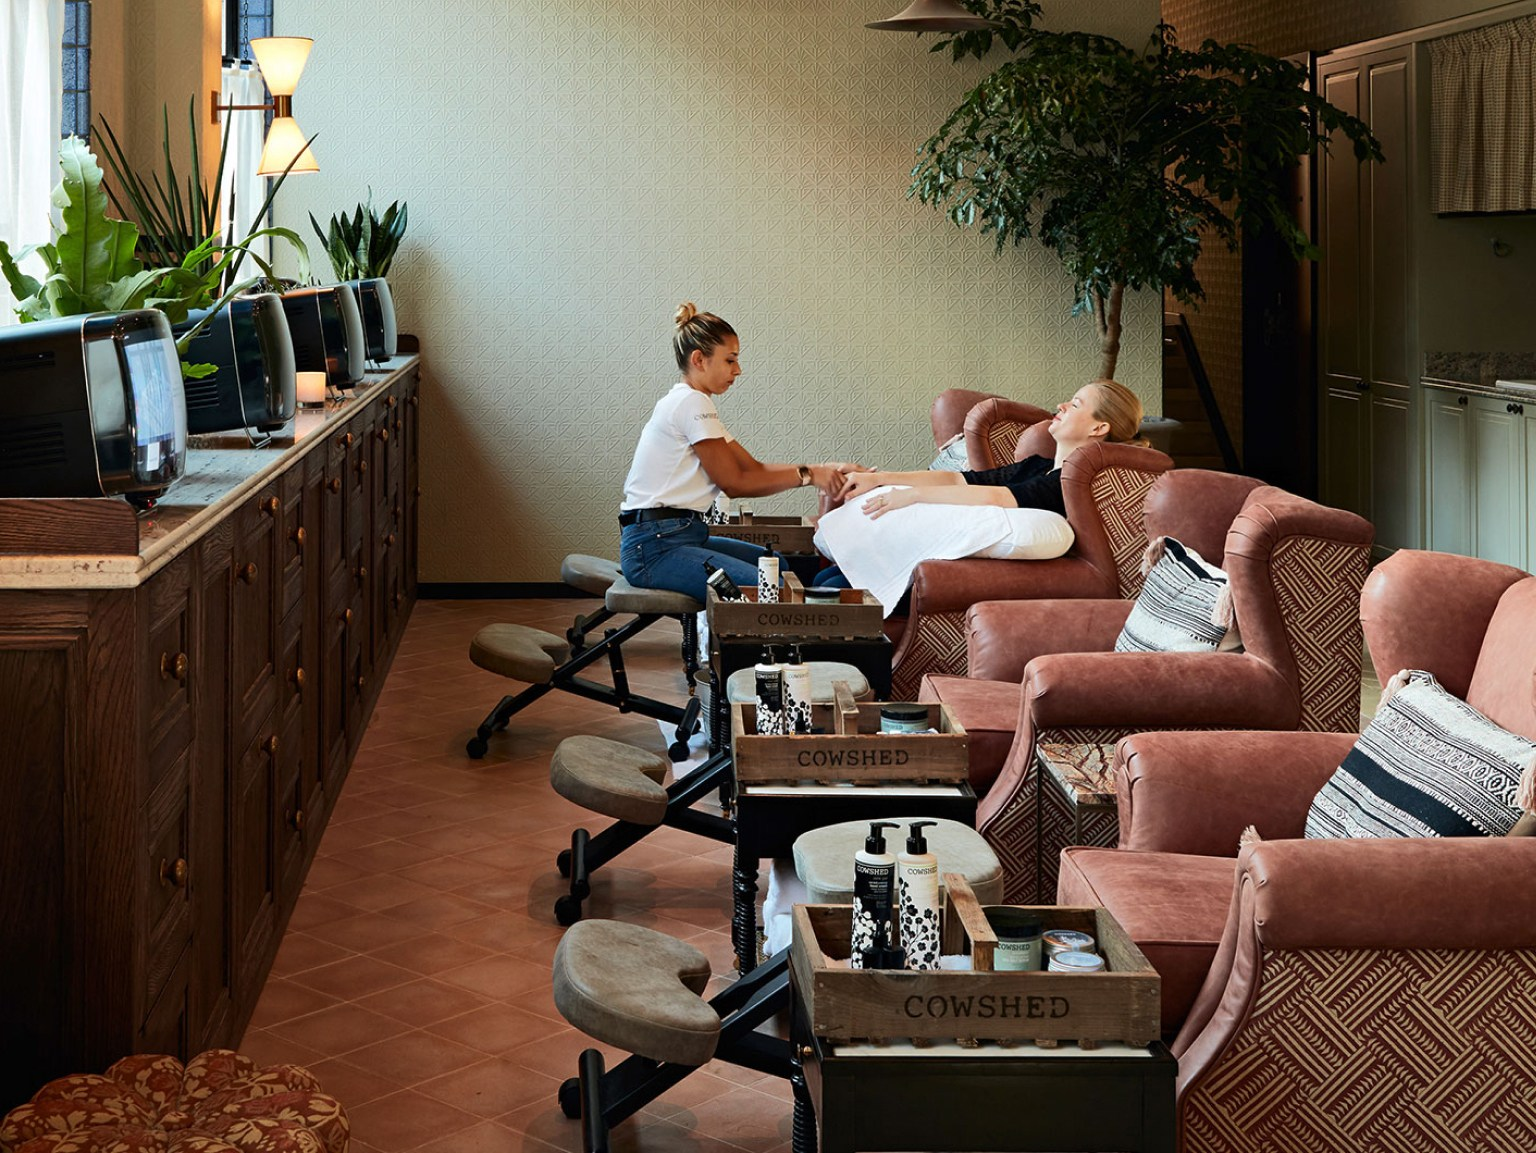 A woman gives another woman a hand massage in a spa.